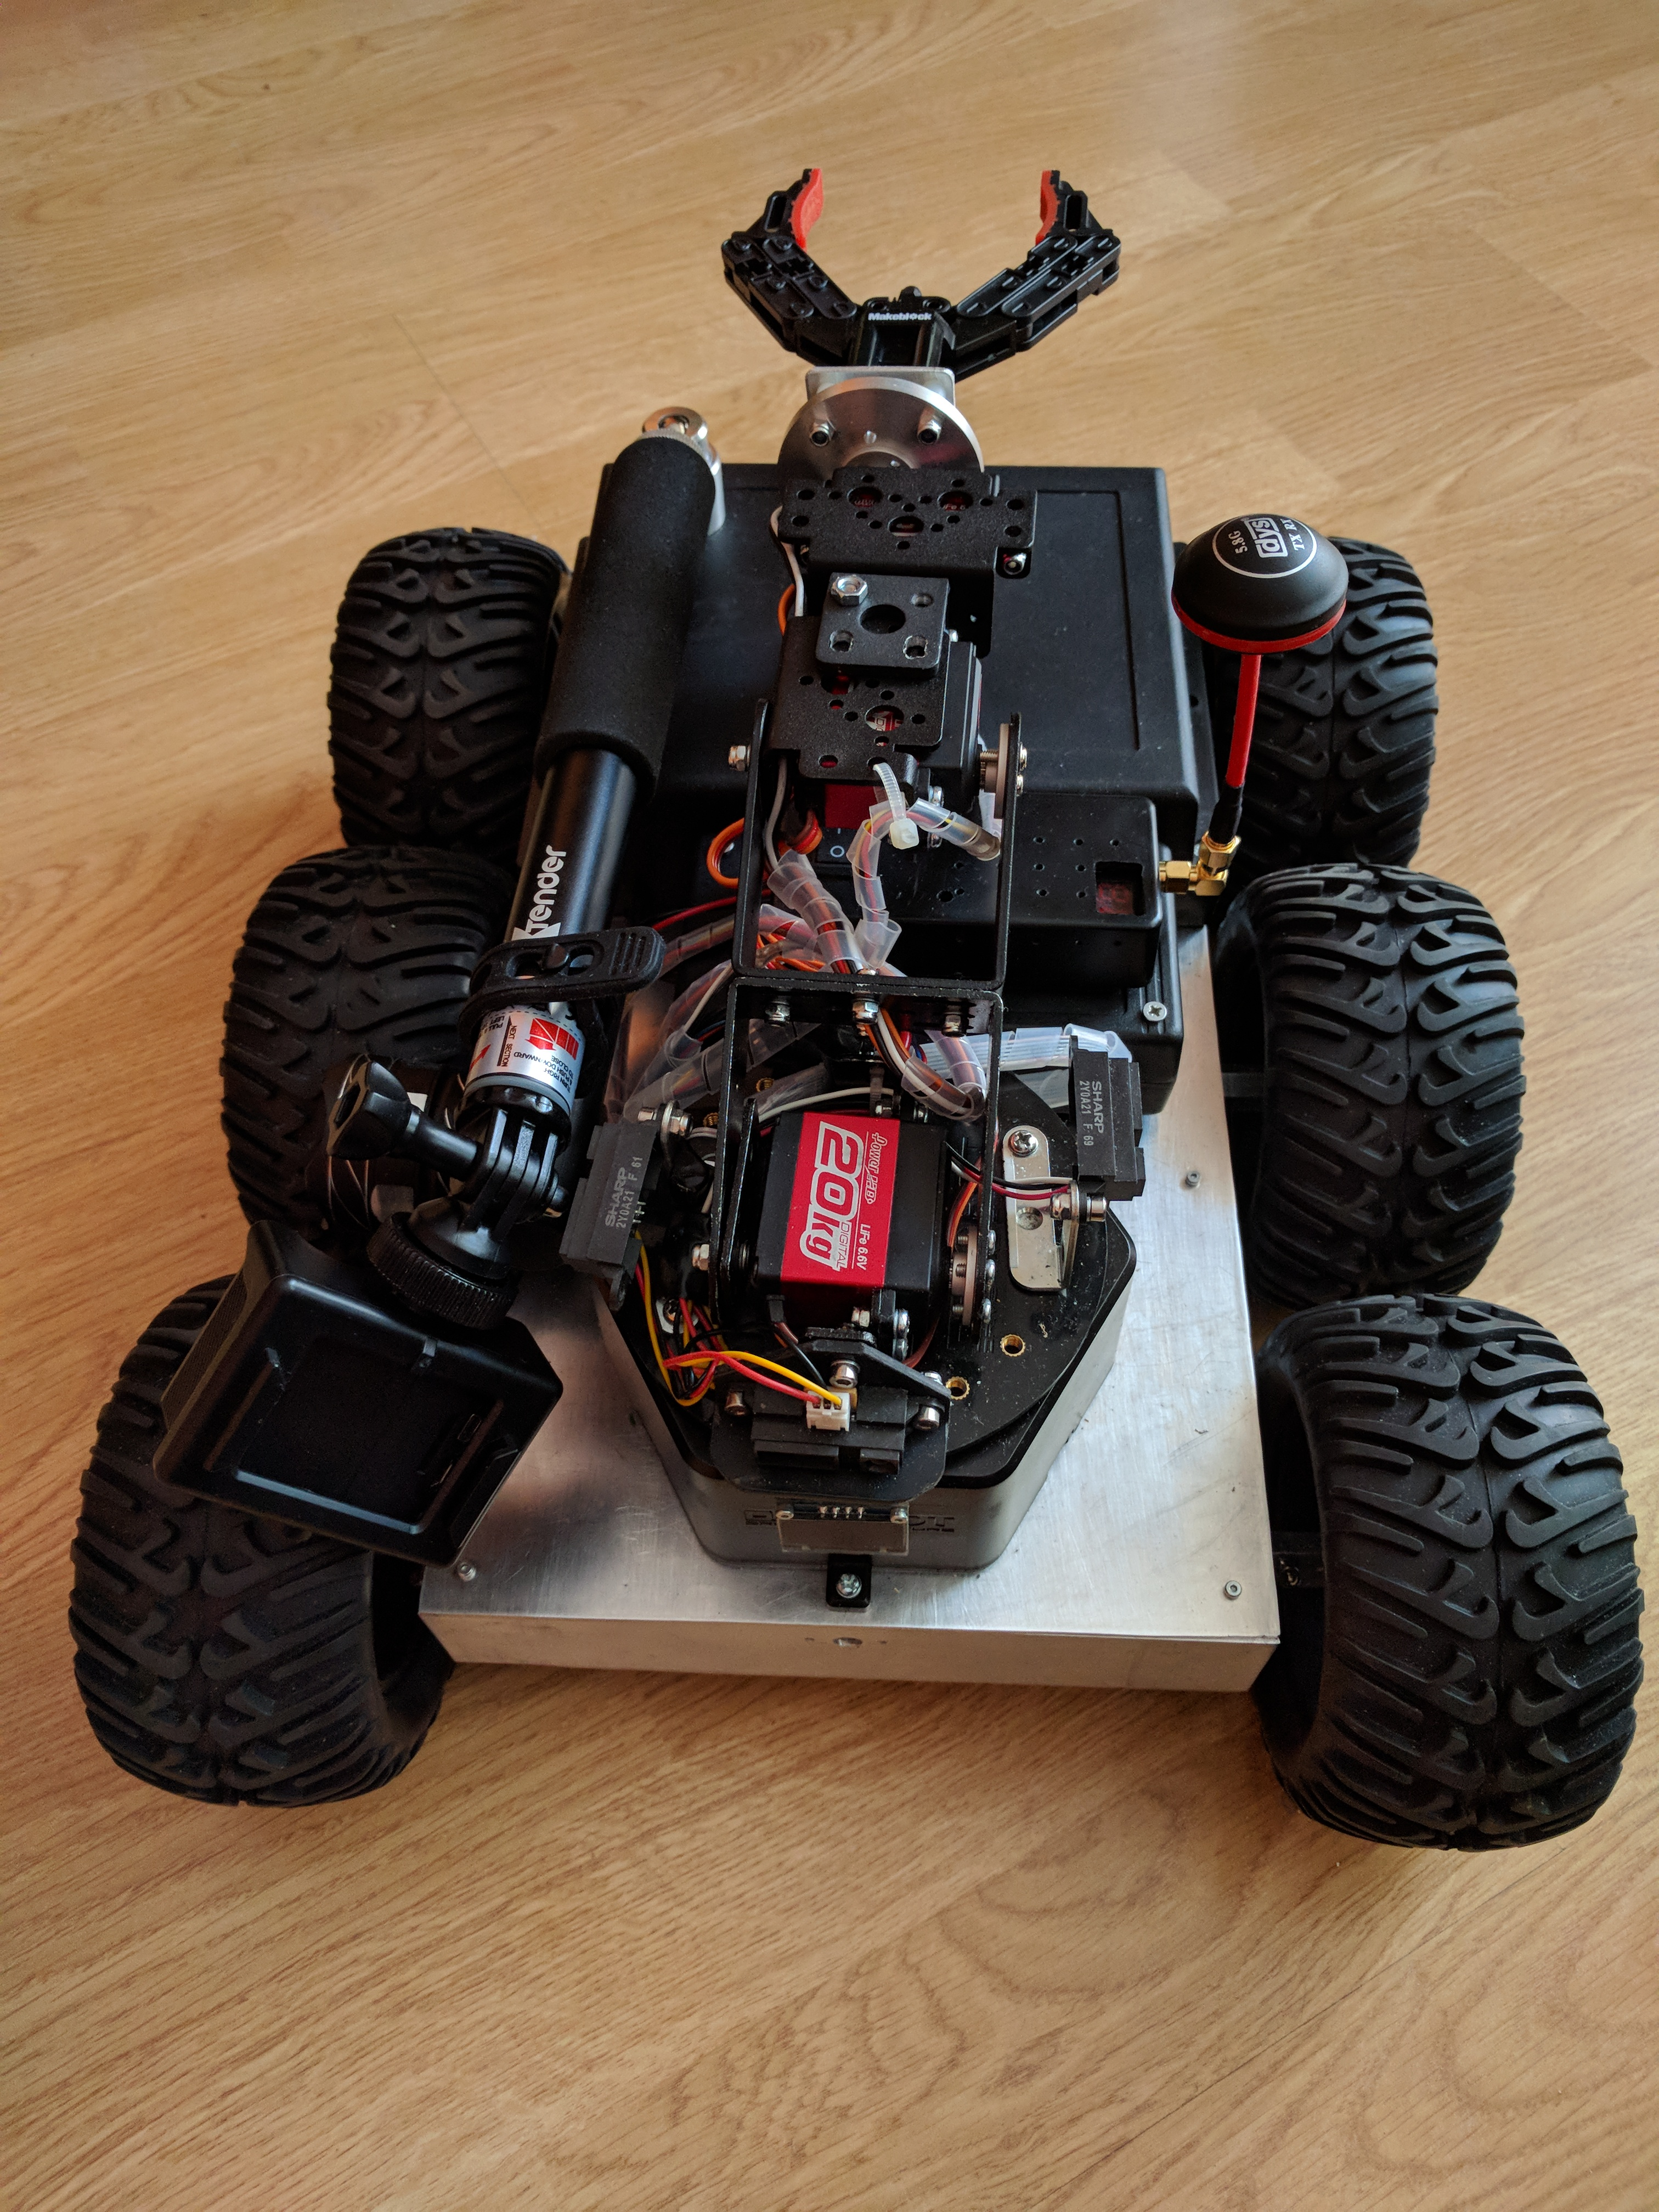 Picture of Checking the Status of the Robot and Preparing for Transport